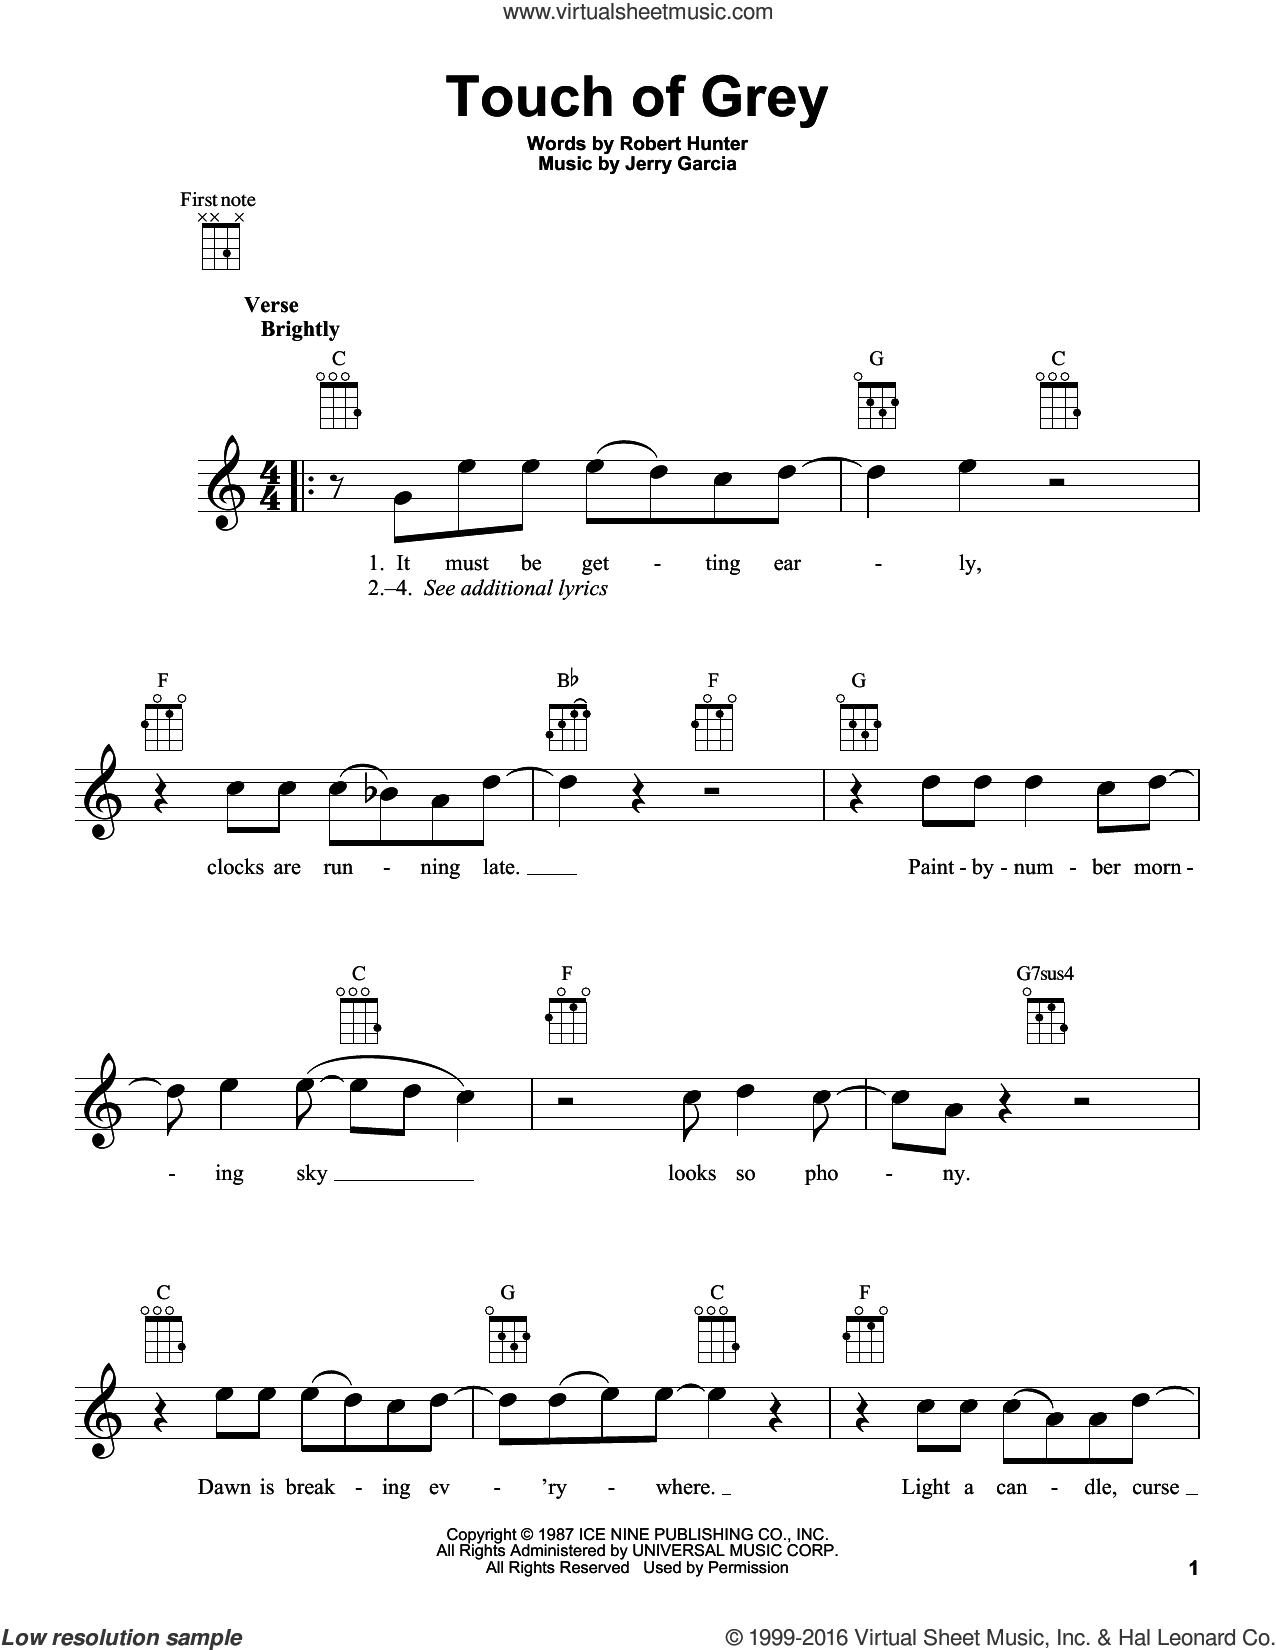 Touch Of Grey sheet music for ukulele by Grateful Dead, Jerry Garcia and Robert Hunter, intermediate skill level